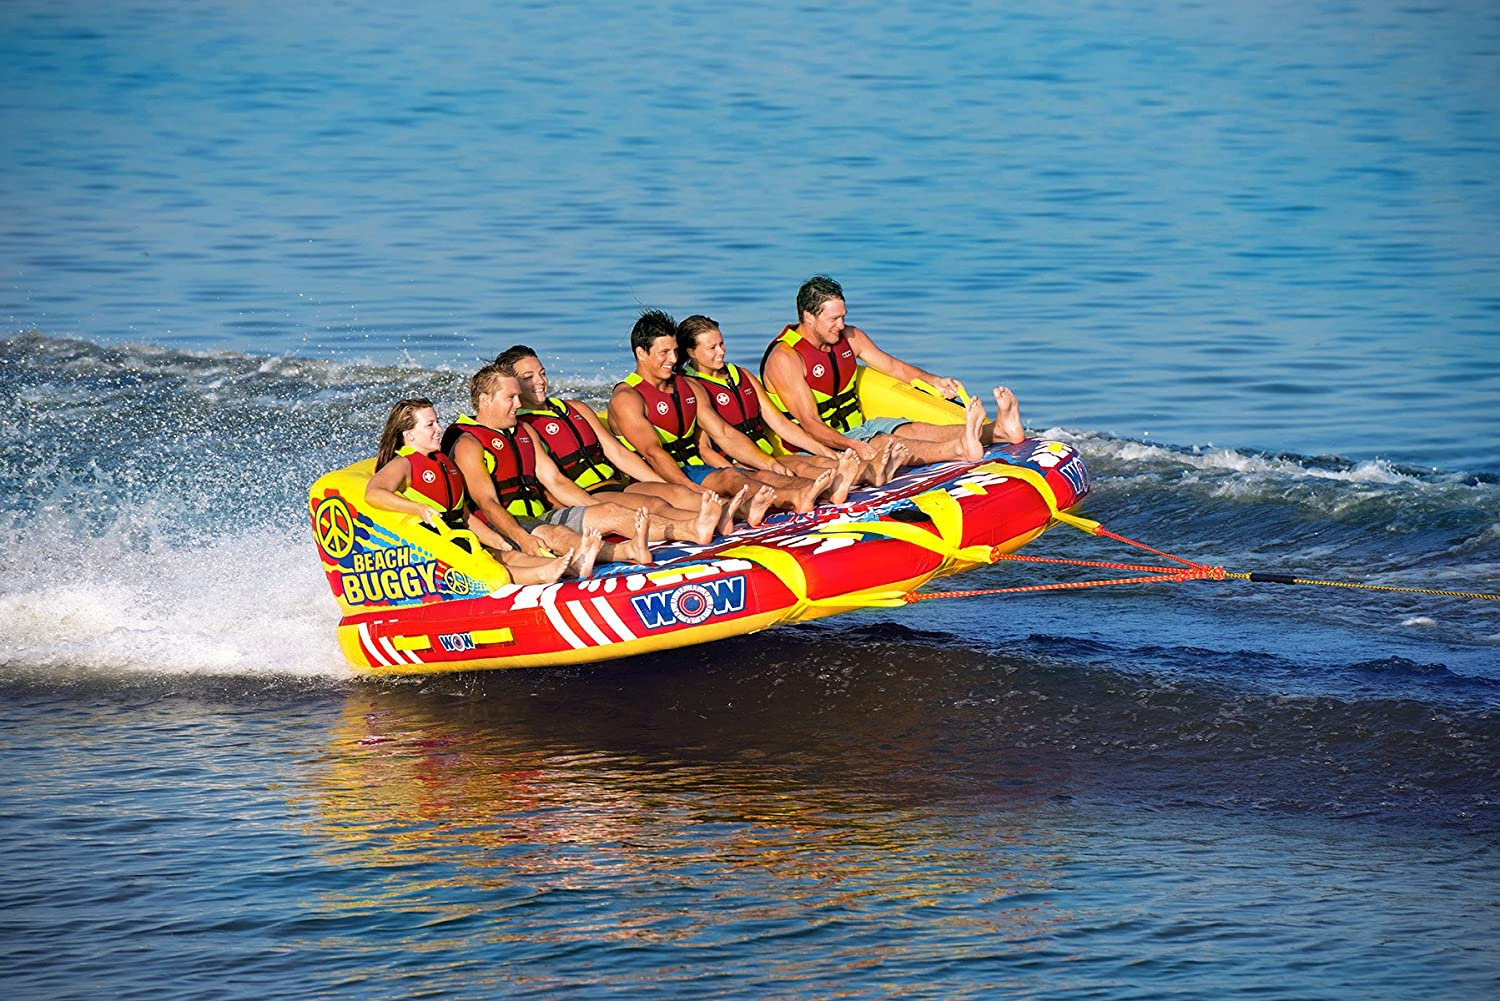 Wow World of Watersports Beach Buggy 1 Louisville-Jefferson County Mall 2 or Max 56% OFF 3 6 Infla Person 4 5